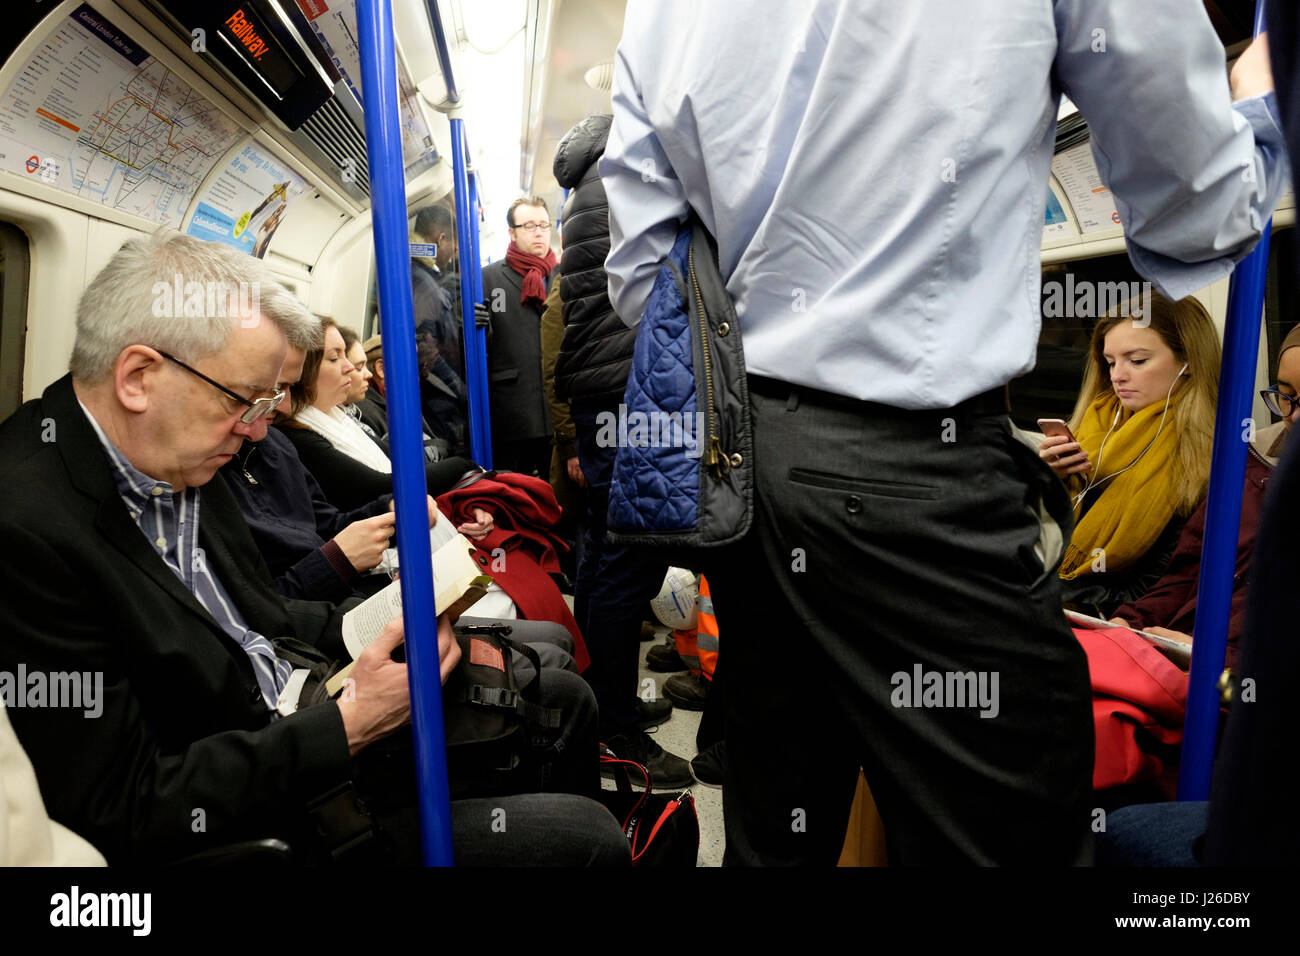 London Underground tube train bondé, Londres, Angleterre, Royaume-Uni, Europe Photo Stock